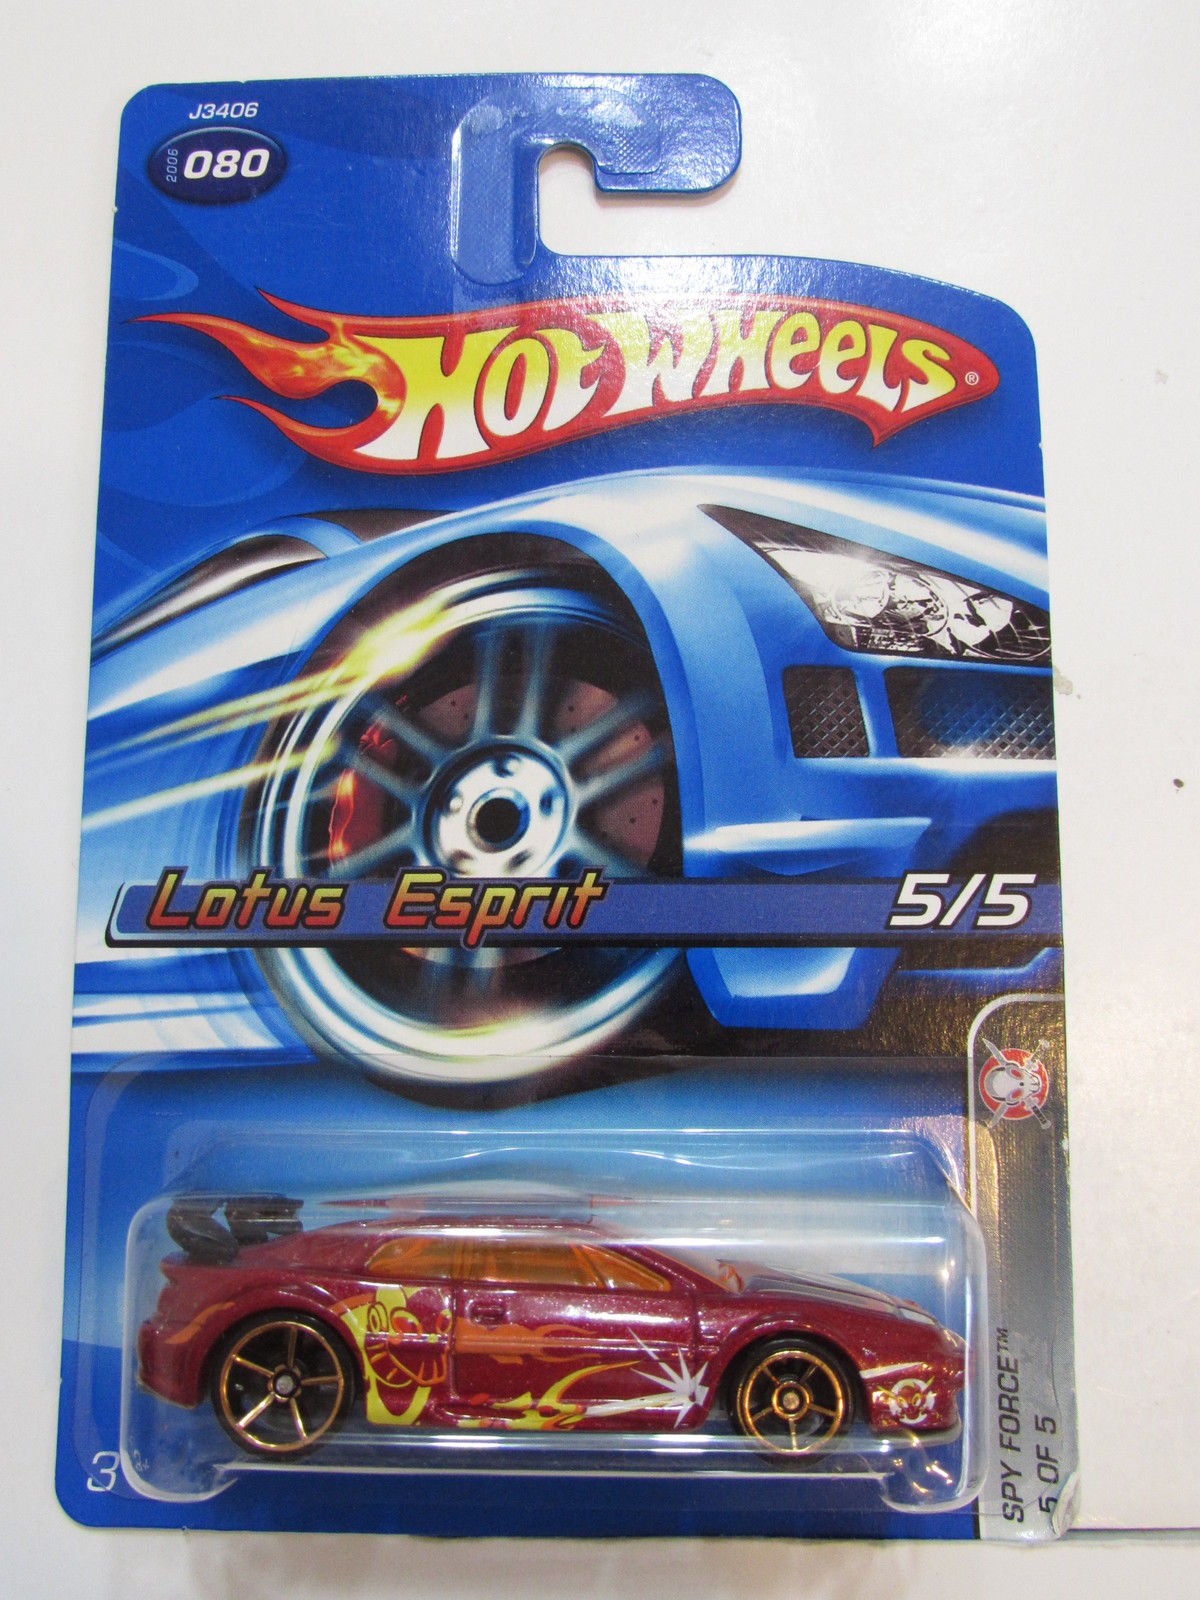 2006 HOT WHEELS LOTUS ESPIRIT #080